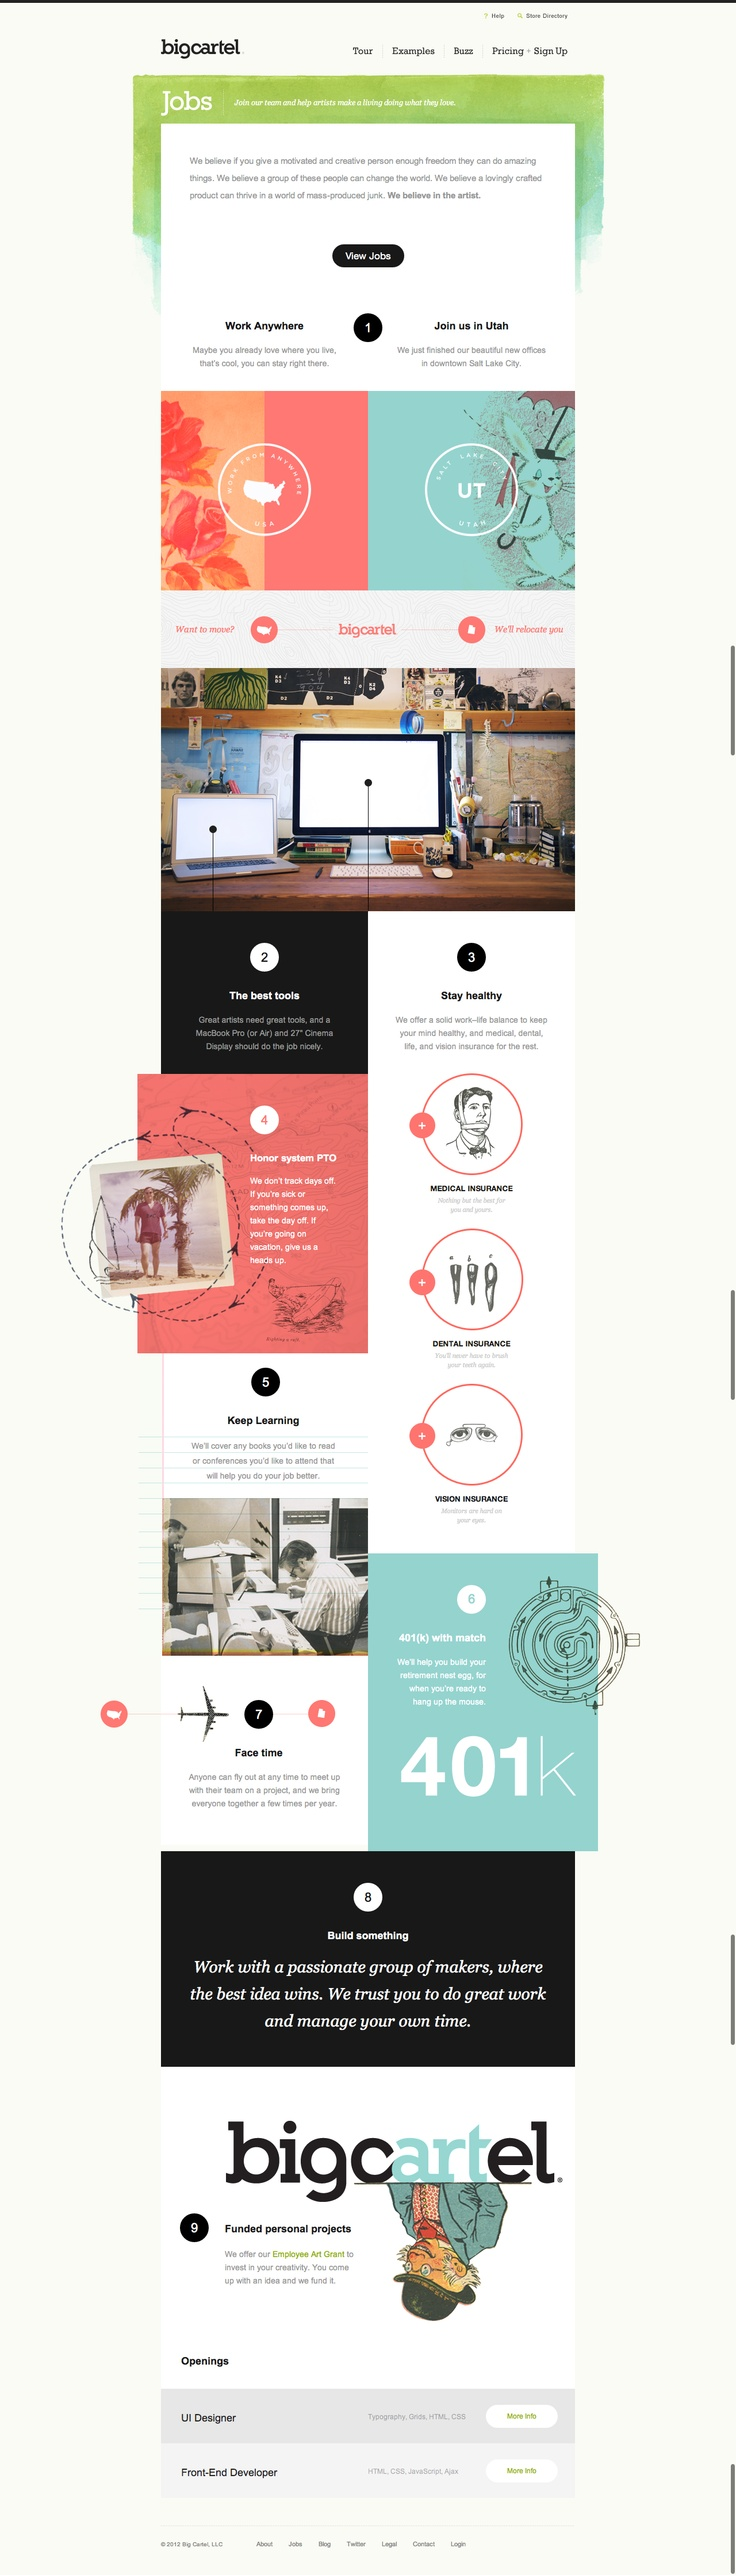 #design #web #webdesign #layout #site #website